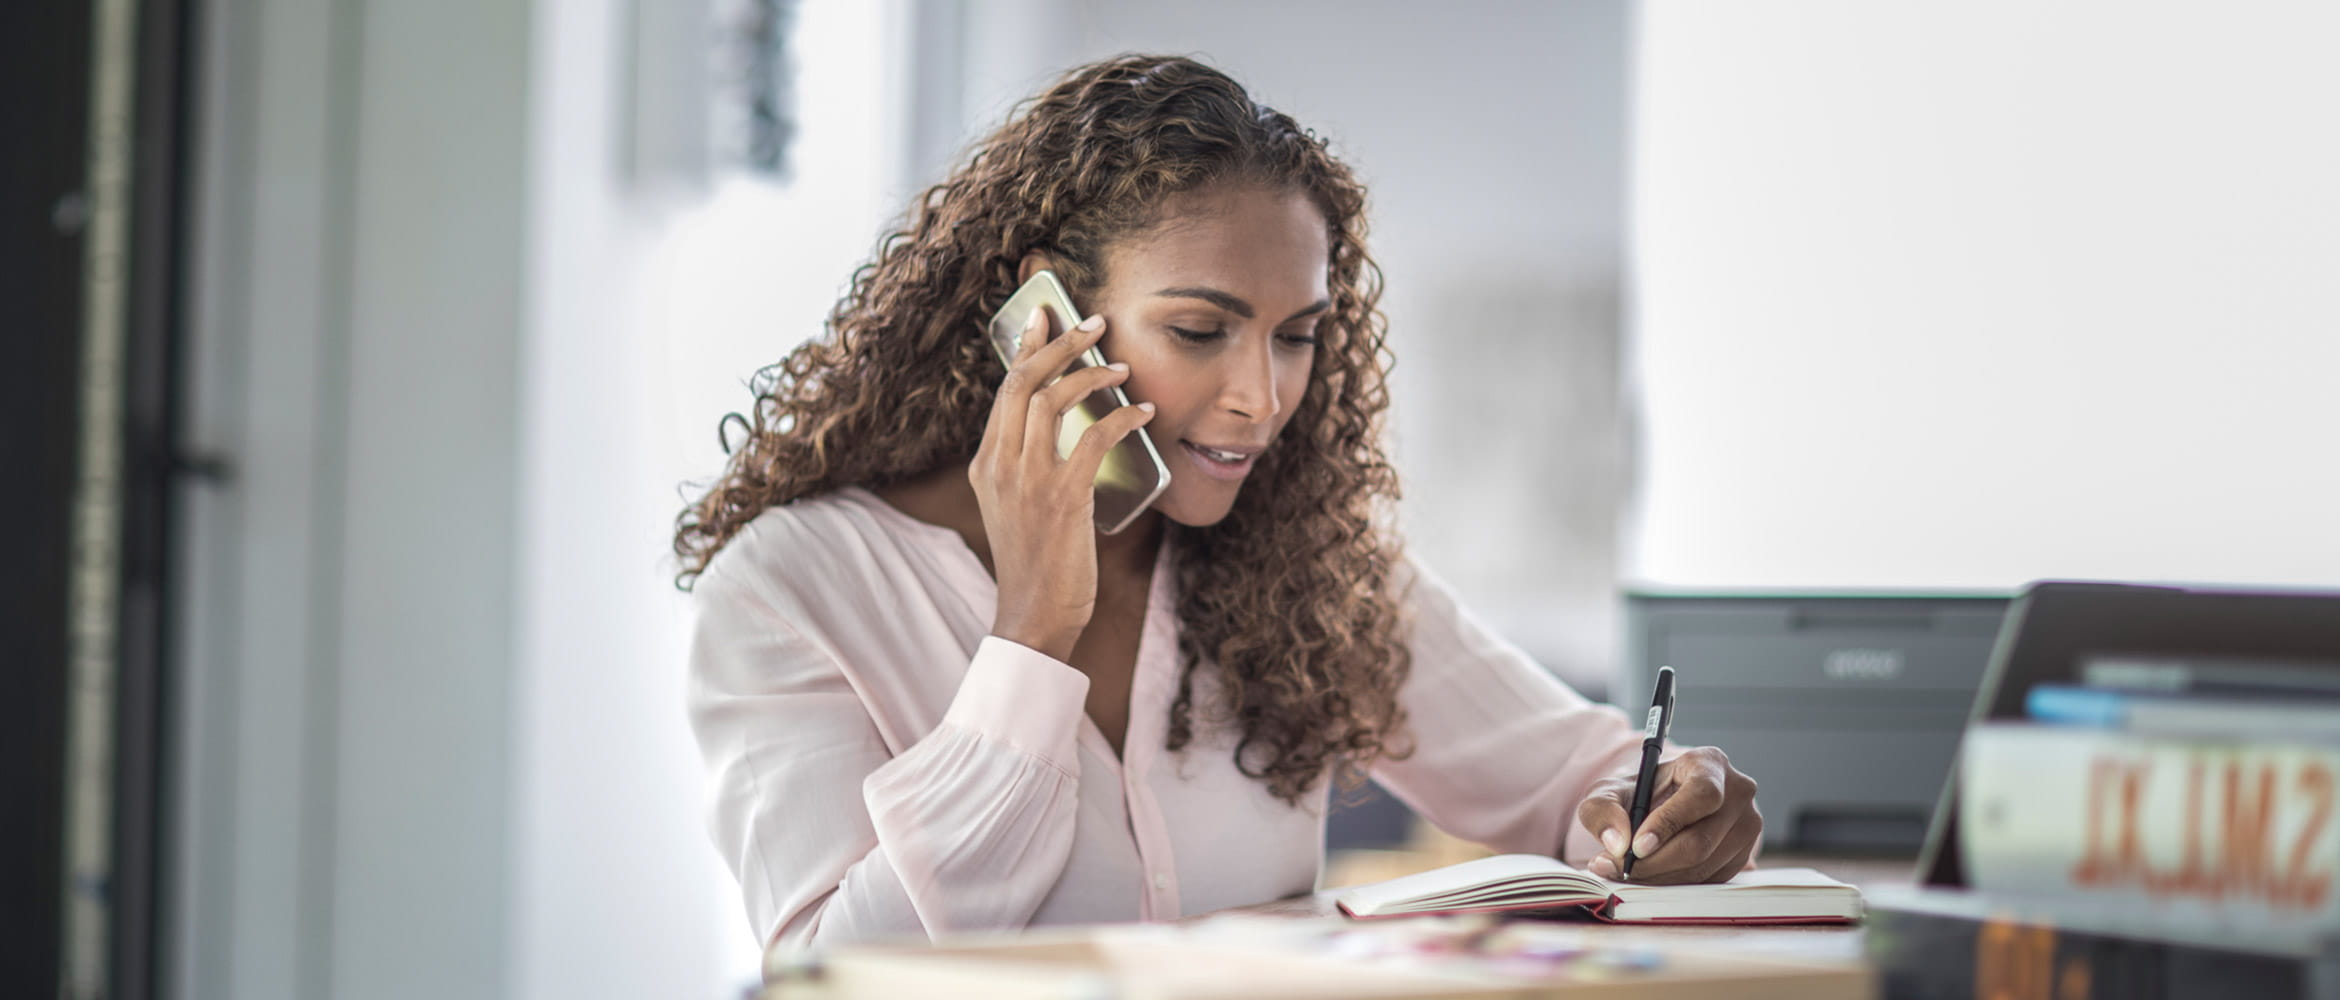 Professionally dressed woman at her desk speaking on her mobile phone and taking notes with Brother printer in background